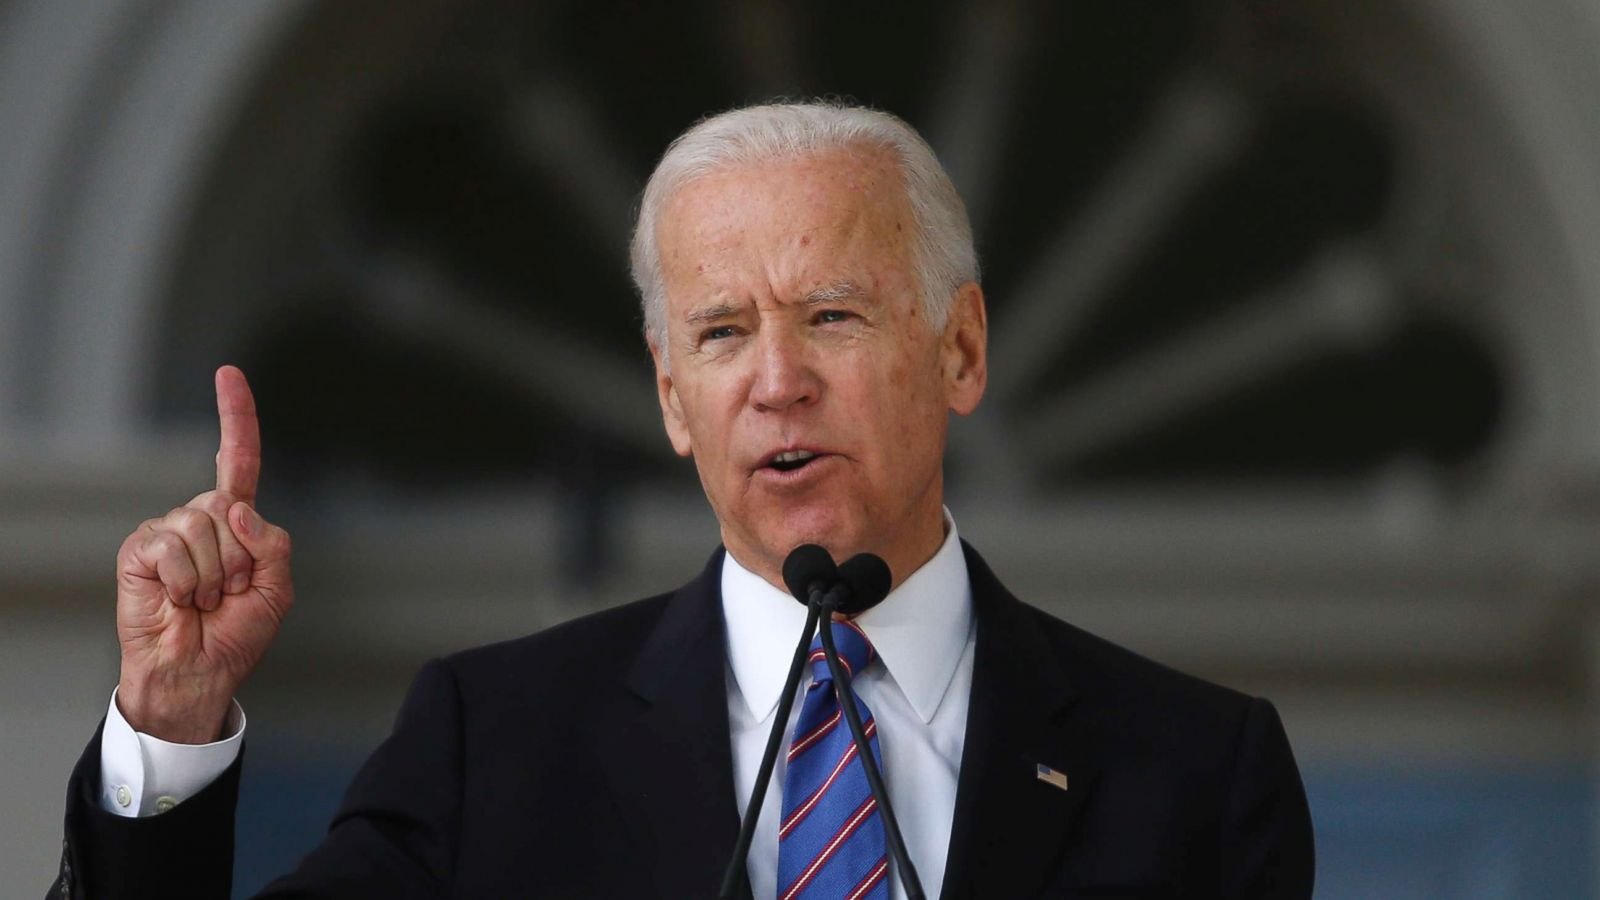 Biden Says He Would Have Beat The Hell Out Of Trump In High School For Disrespecting Women Abc News